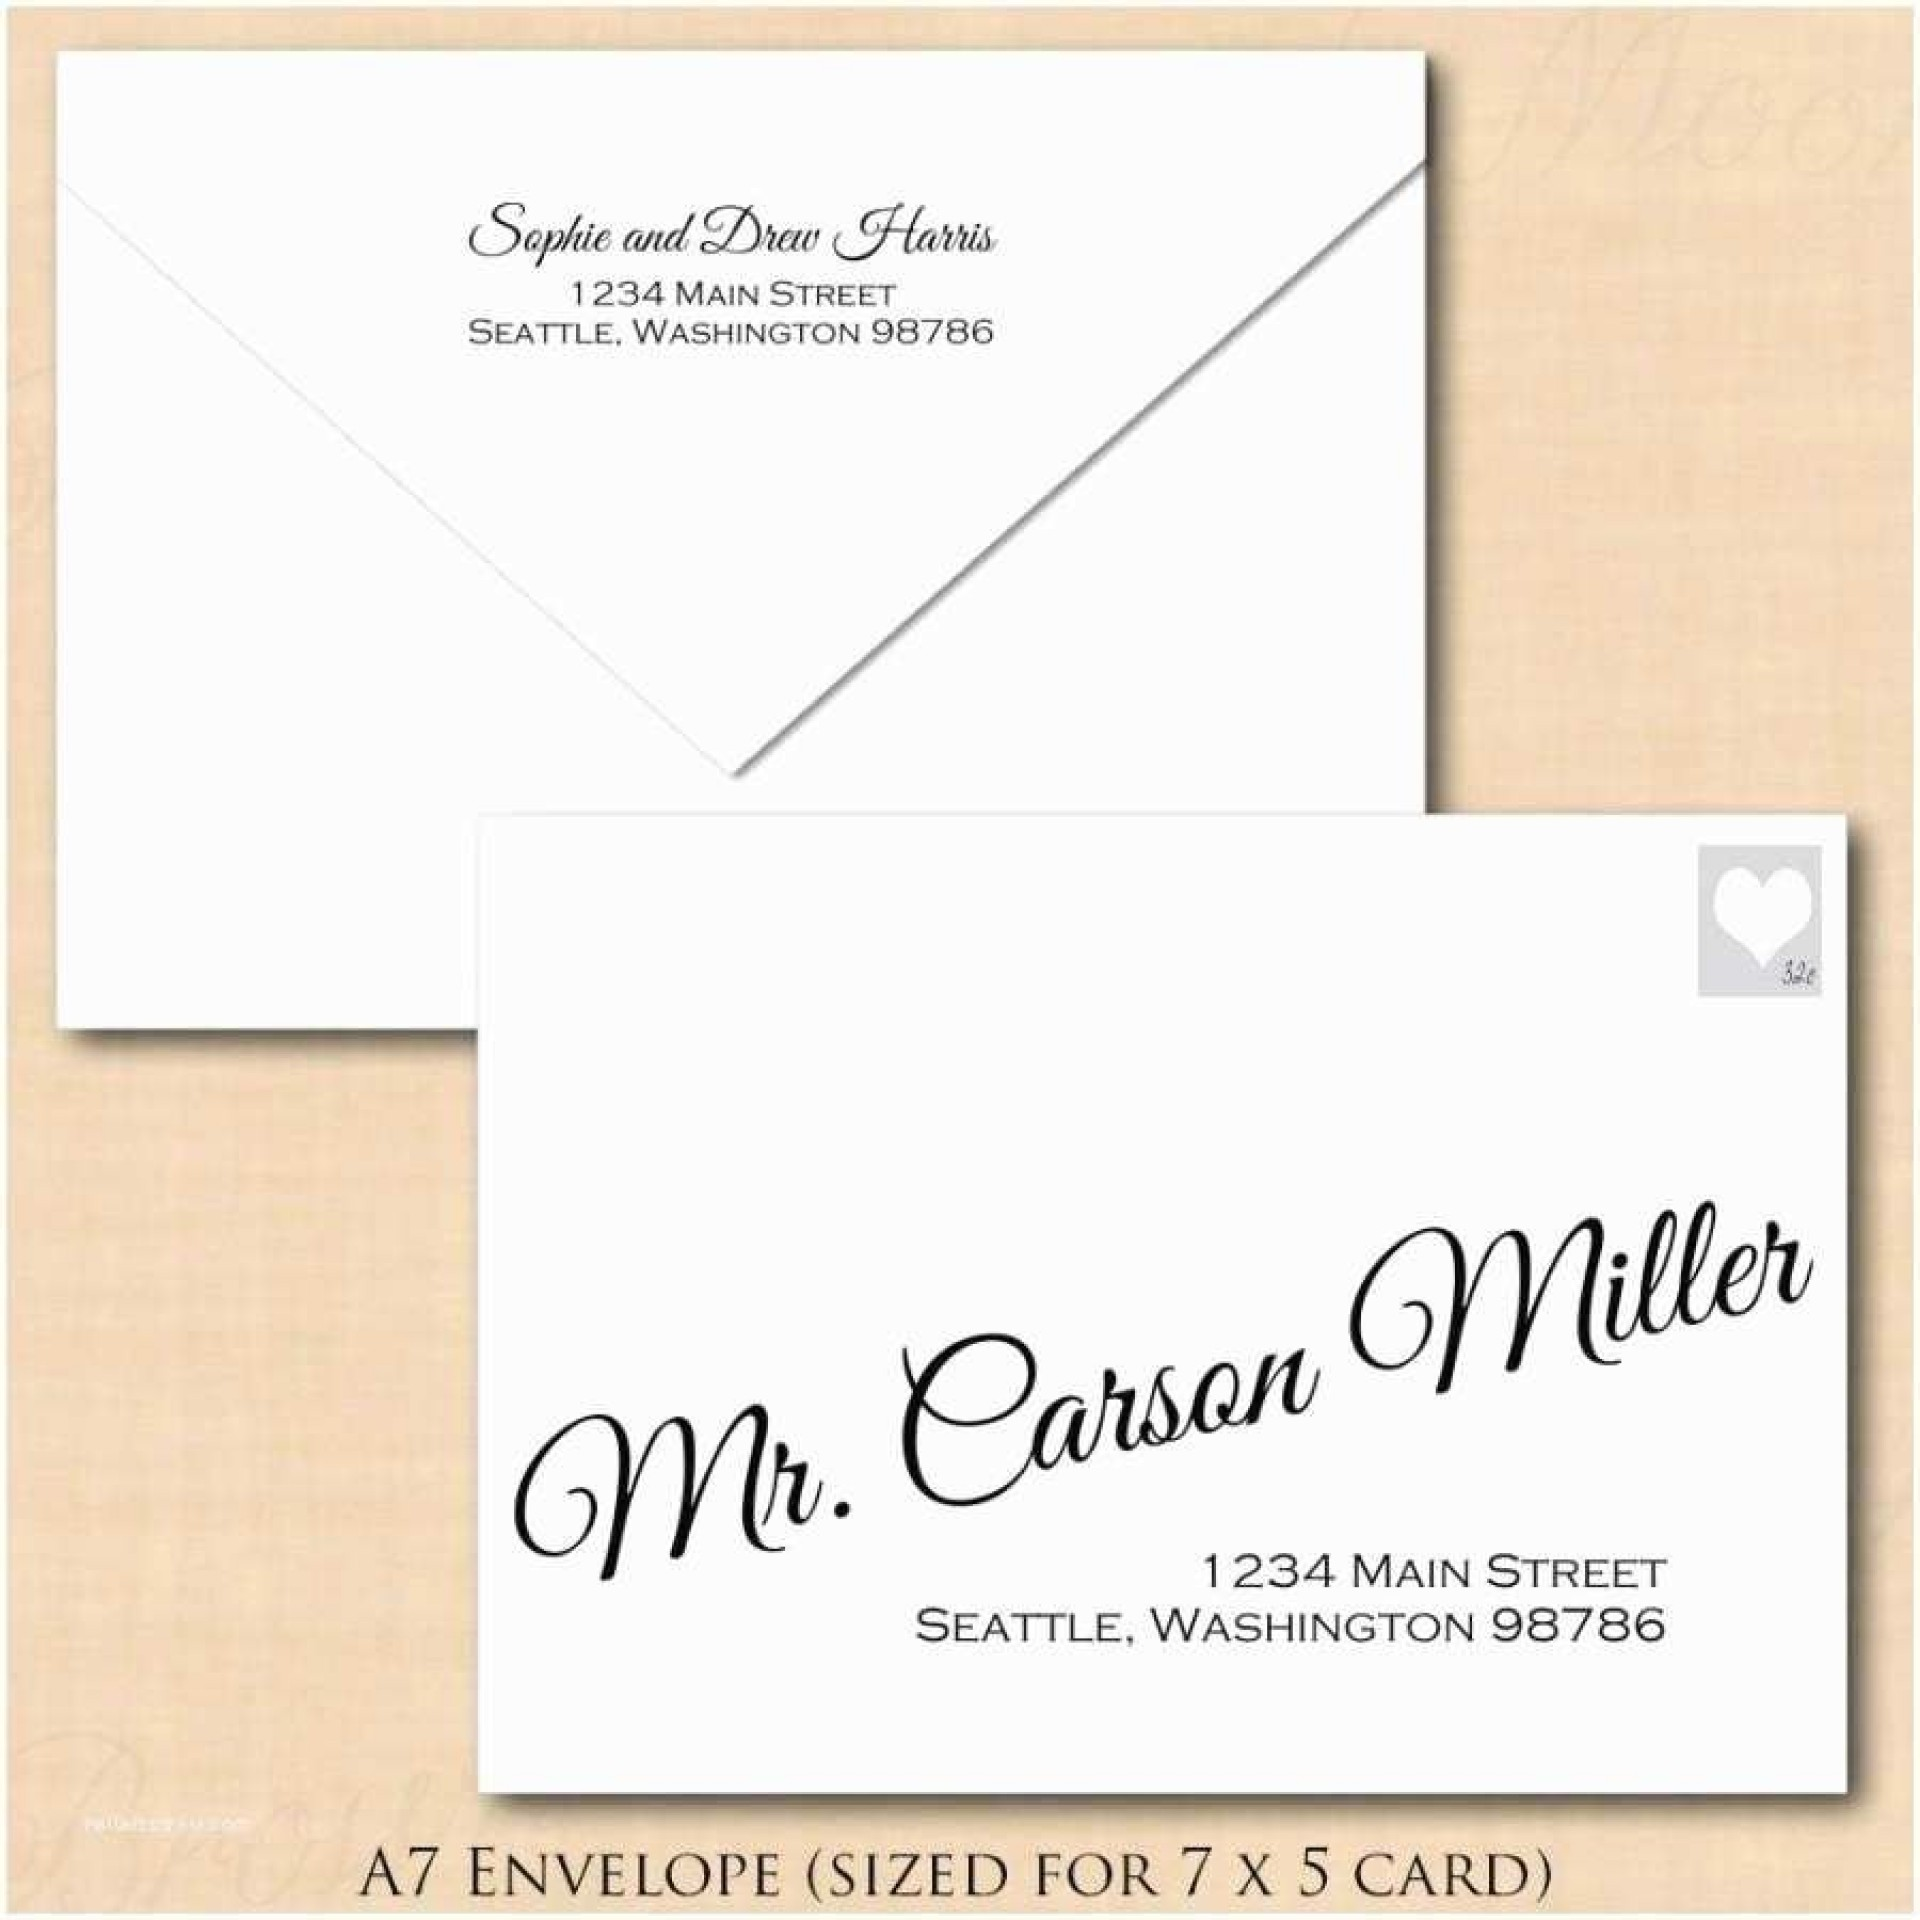 009 Impressive Envelope Template For Word Design  Avery A7 5x7 Microsoft1920